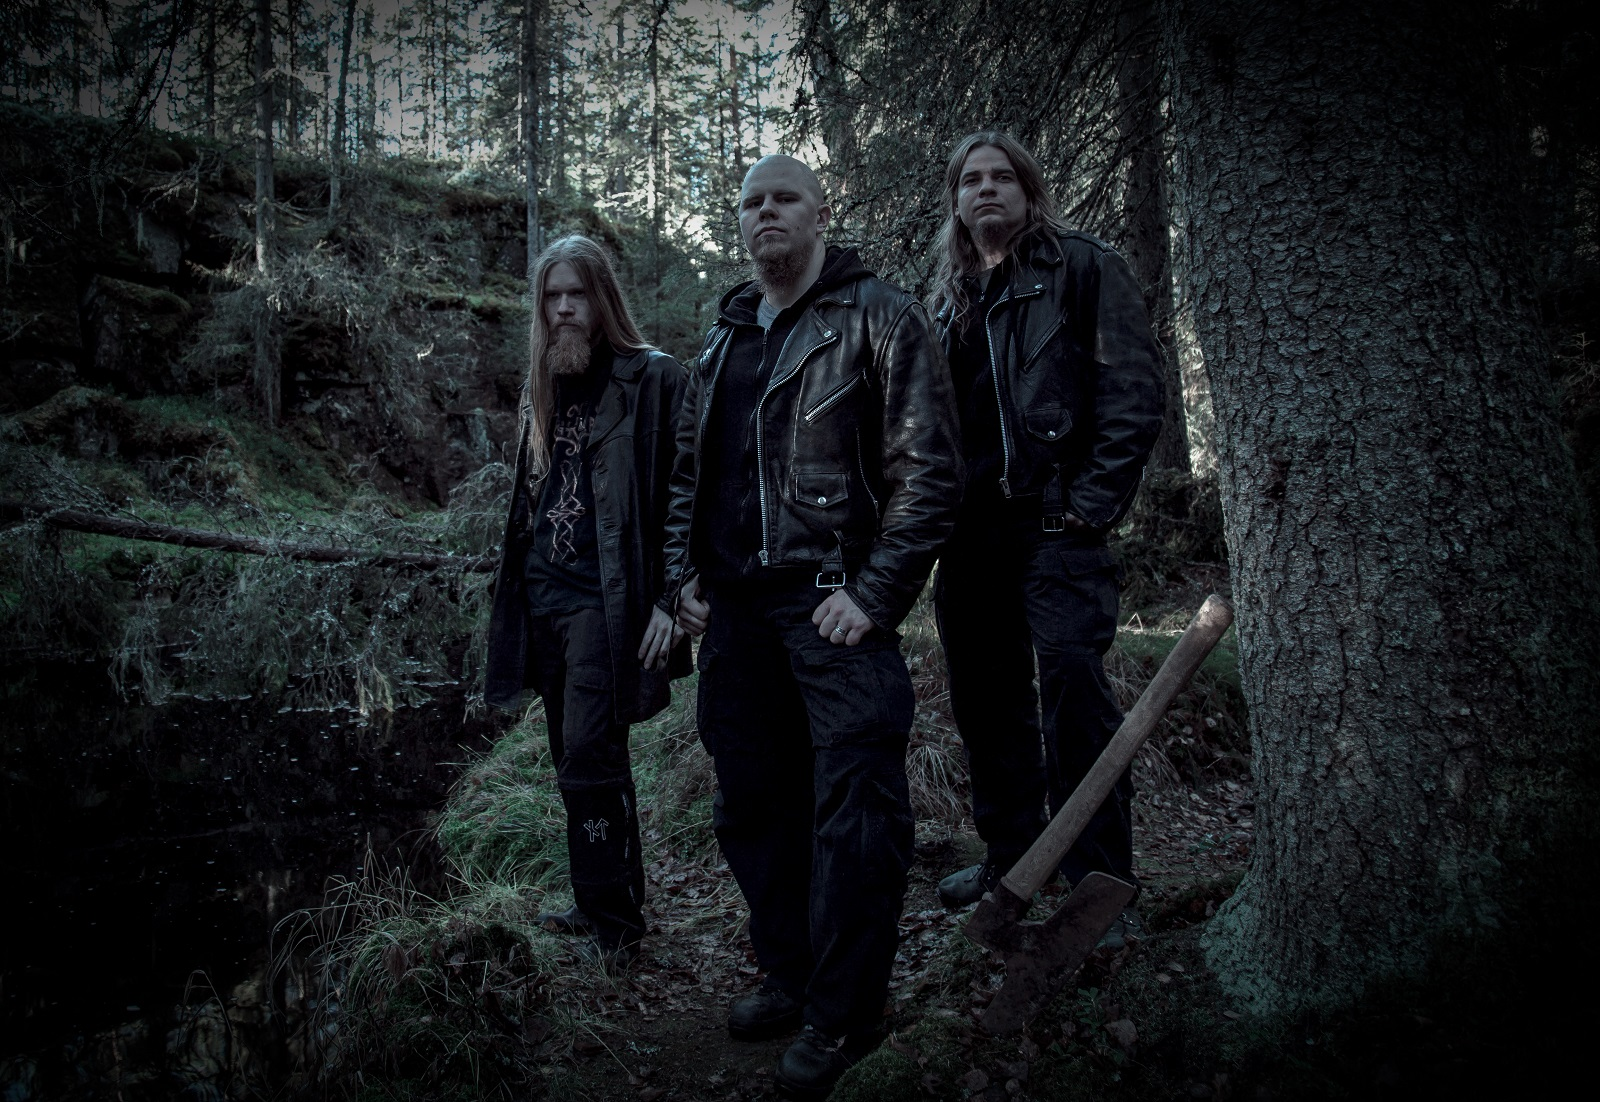 Wolfhorde releases digital tribute EP featuring songs from Finntroll, Moonsorrow and Amorphis!